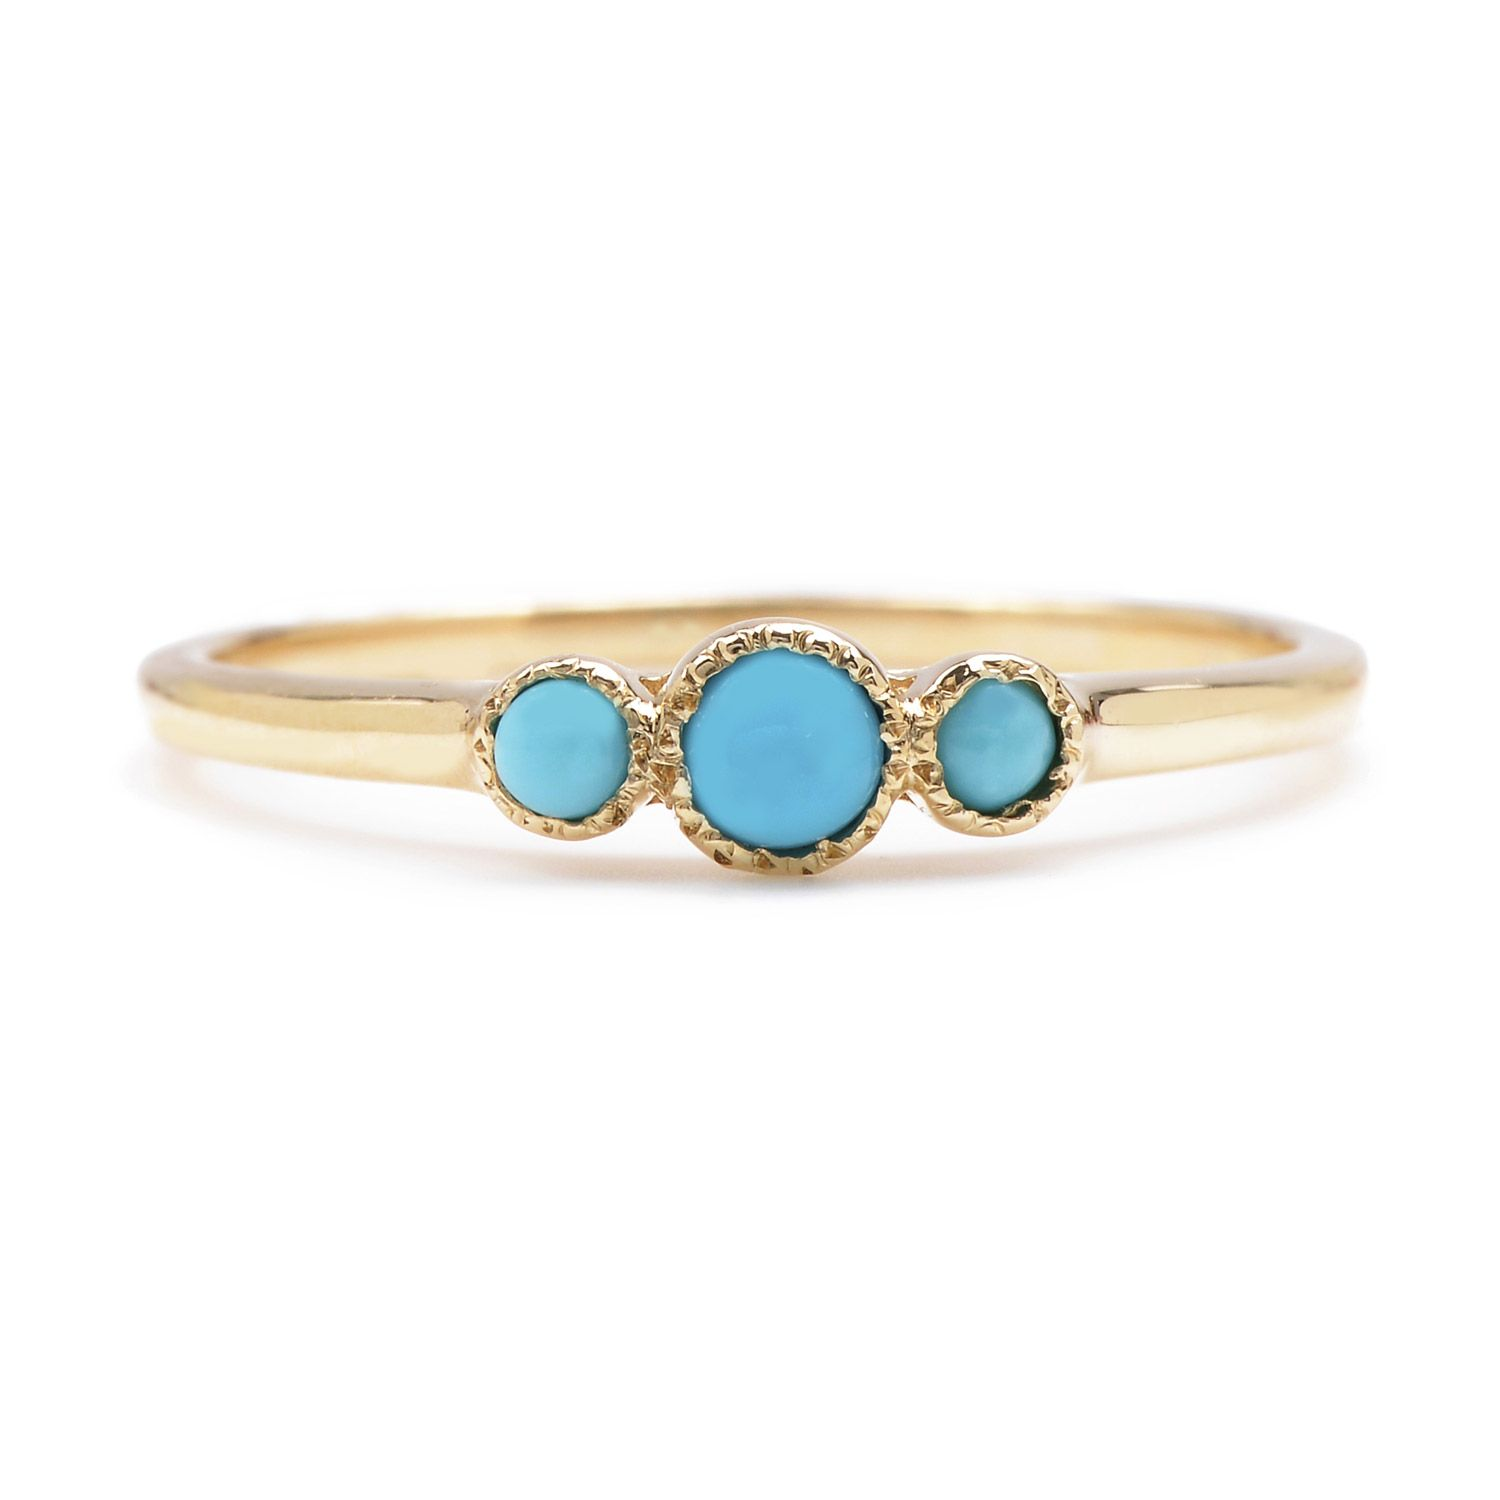 Turquoise Trinity Ring | Our wee trinity ring featuring 2mm and 3mm turquoise cabochons. Simple and sweet. | Handmade in NYC